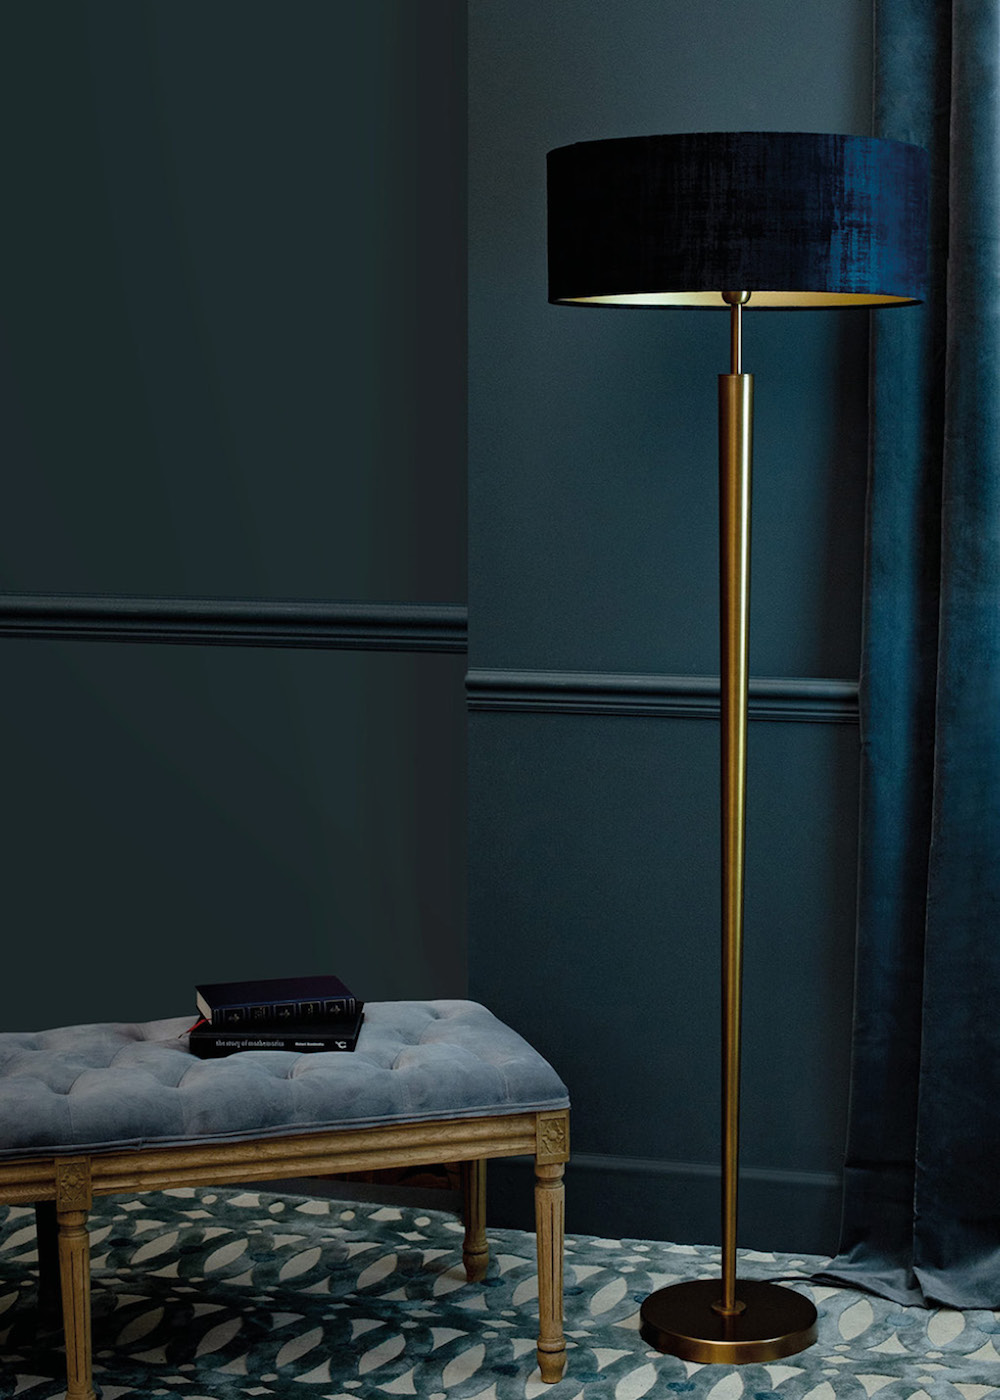 Image caption: Heathfield & Co's Torchere Floor Lamp